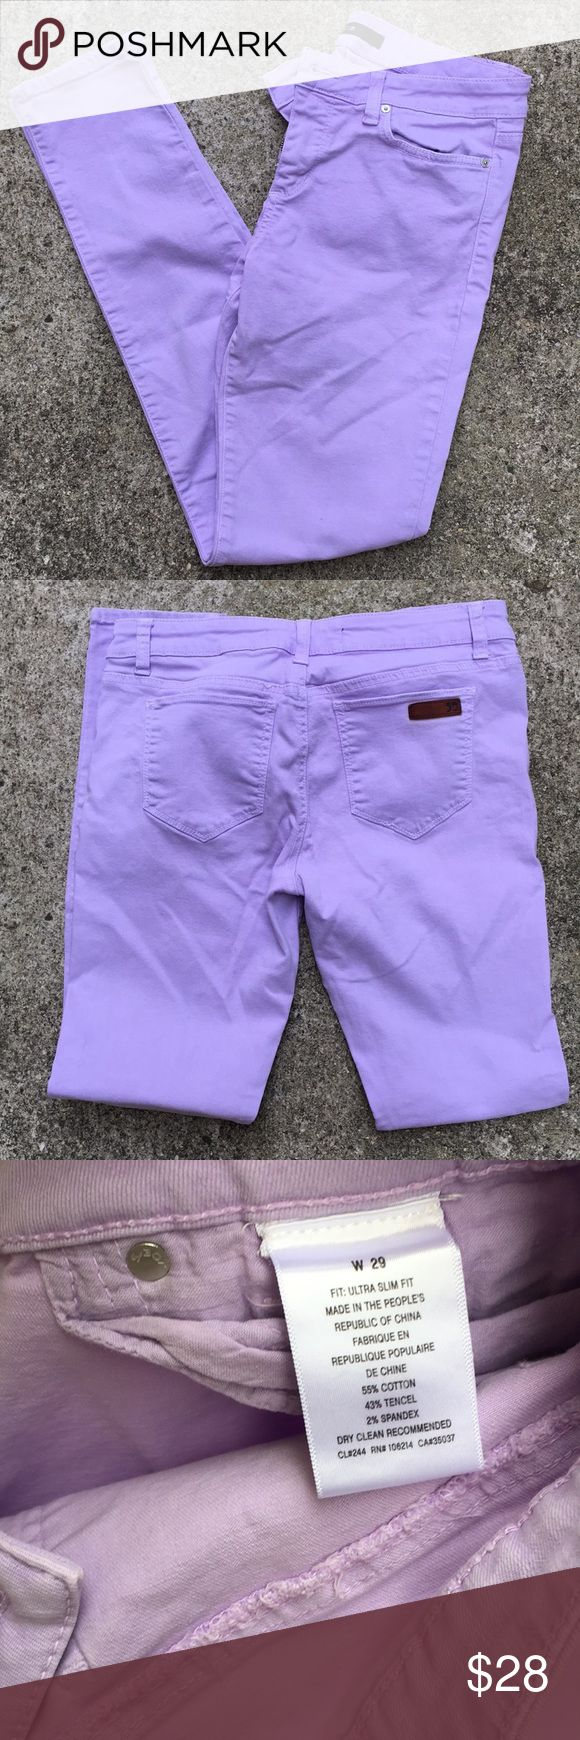 """Joe's Lilac Skinny Jeans Sz 29 Inseam 30"""" Great condition light purple skinny jeans from Joes Jeans. Size 29. 30"""" inseam. No stains or tears. Joe's Jeans Jeans Skinny"""